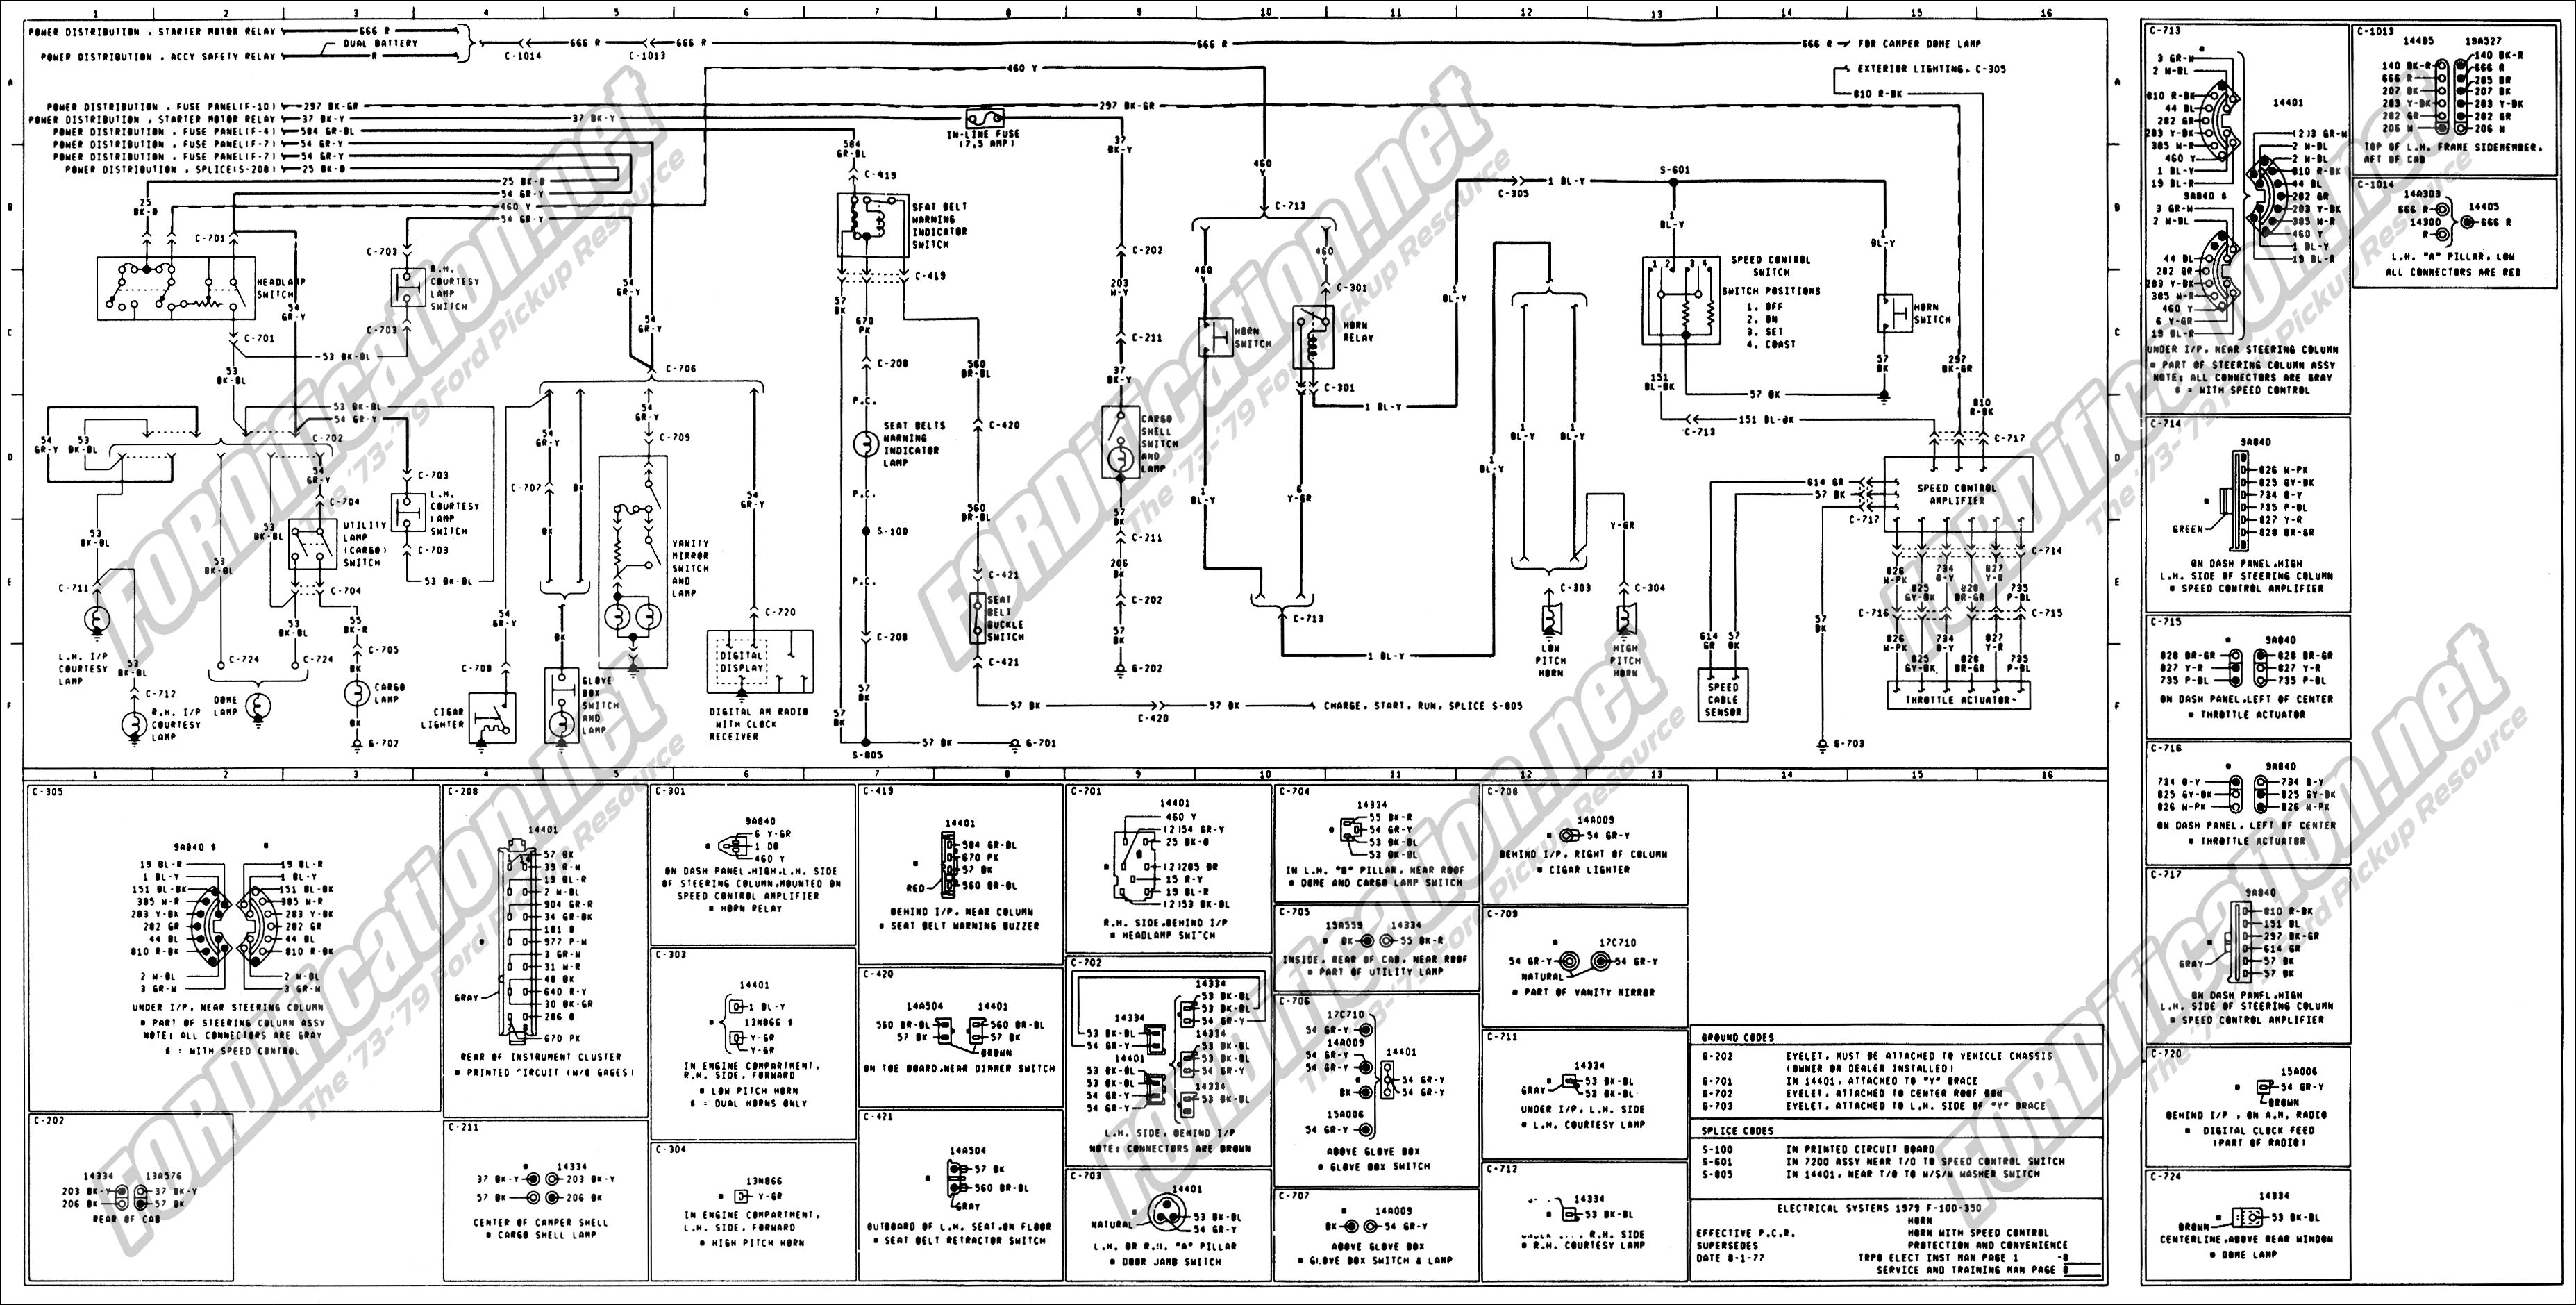 wiring 79master 8of9 jpg f100 wiring diagram f100 image wiring diagram 79 ford f 250